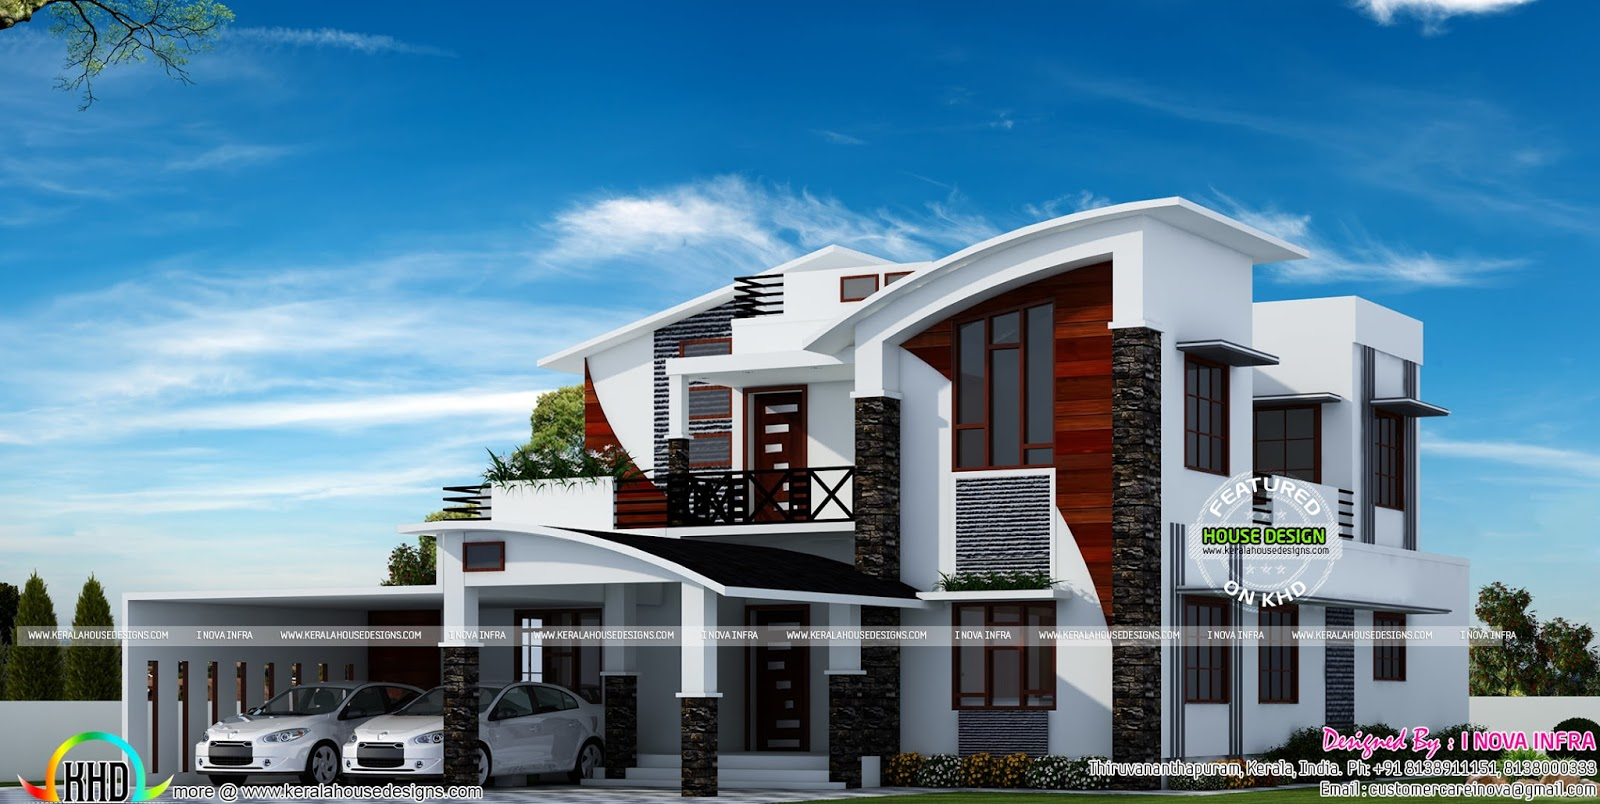 Contemporary model curved roof house homes design plans for New model contemporary house